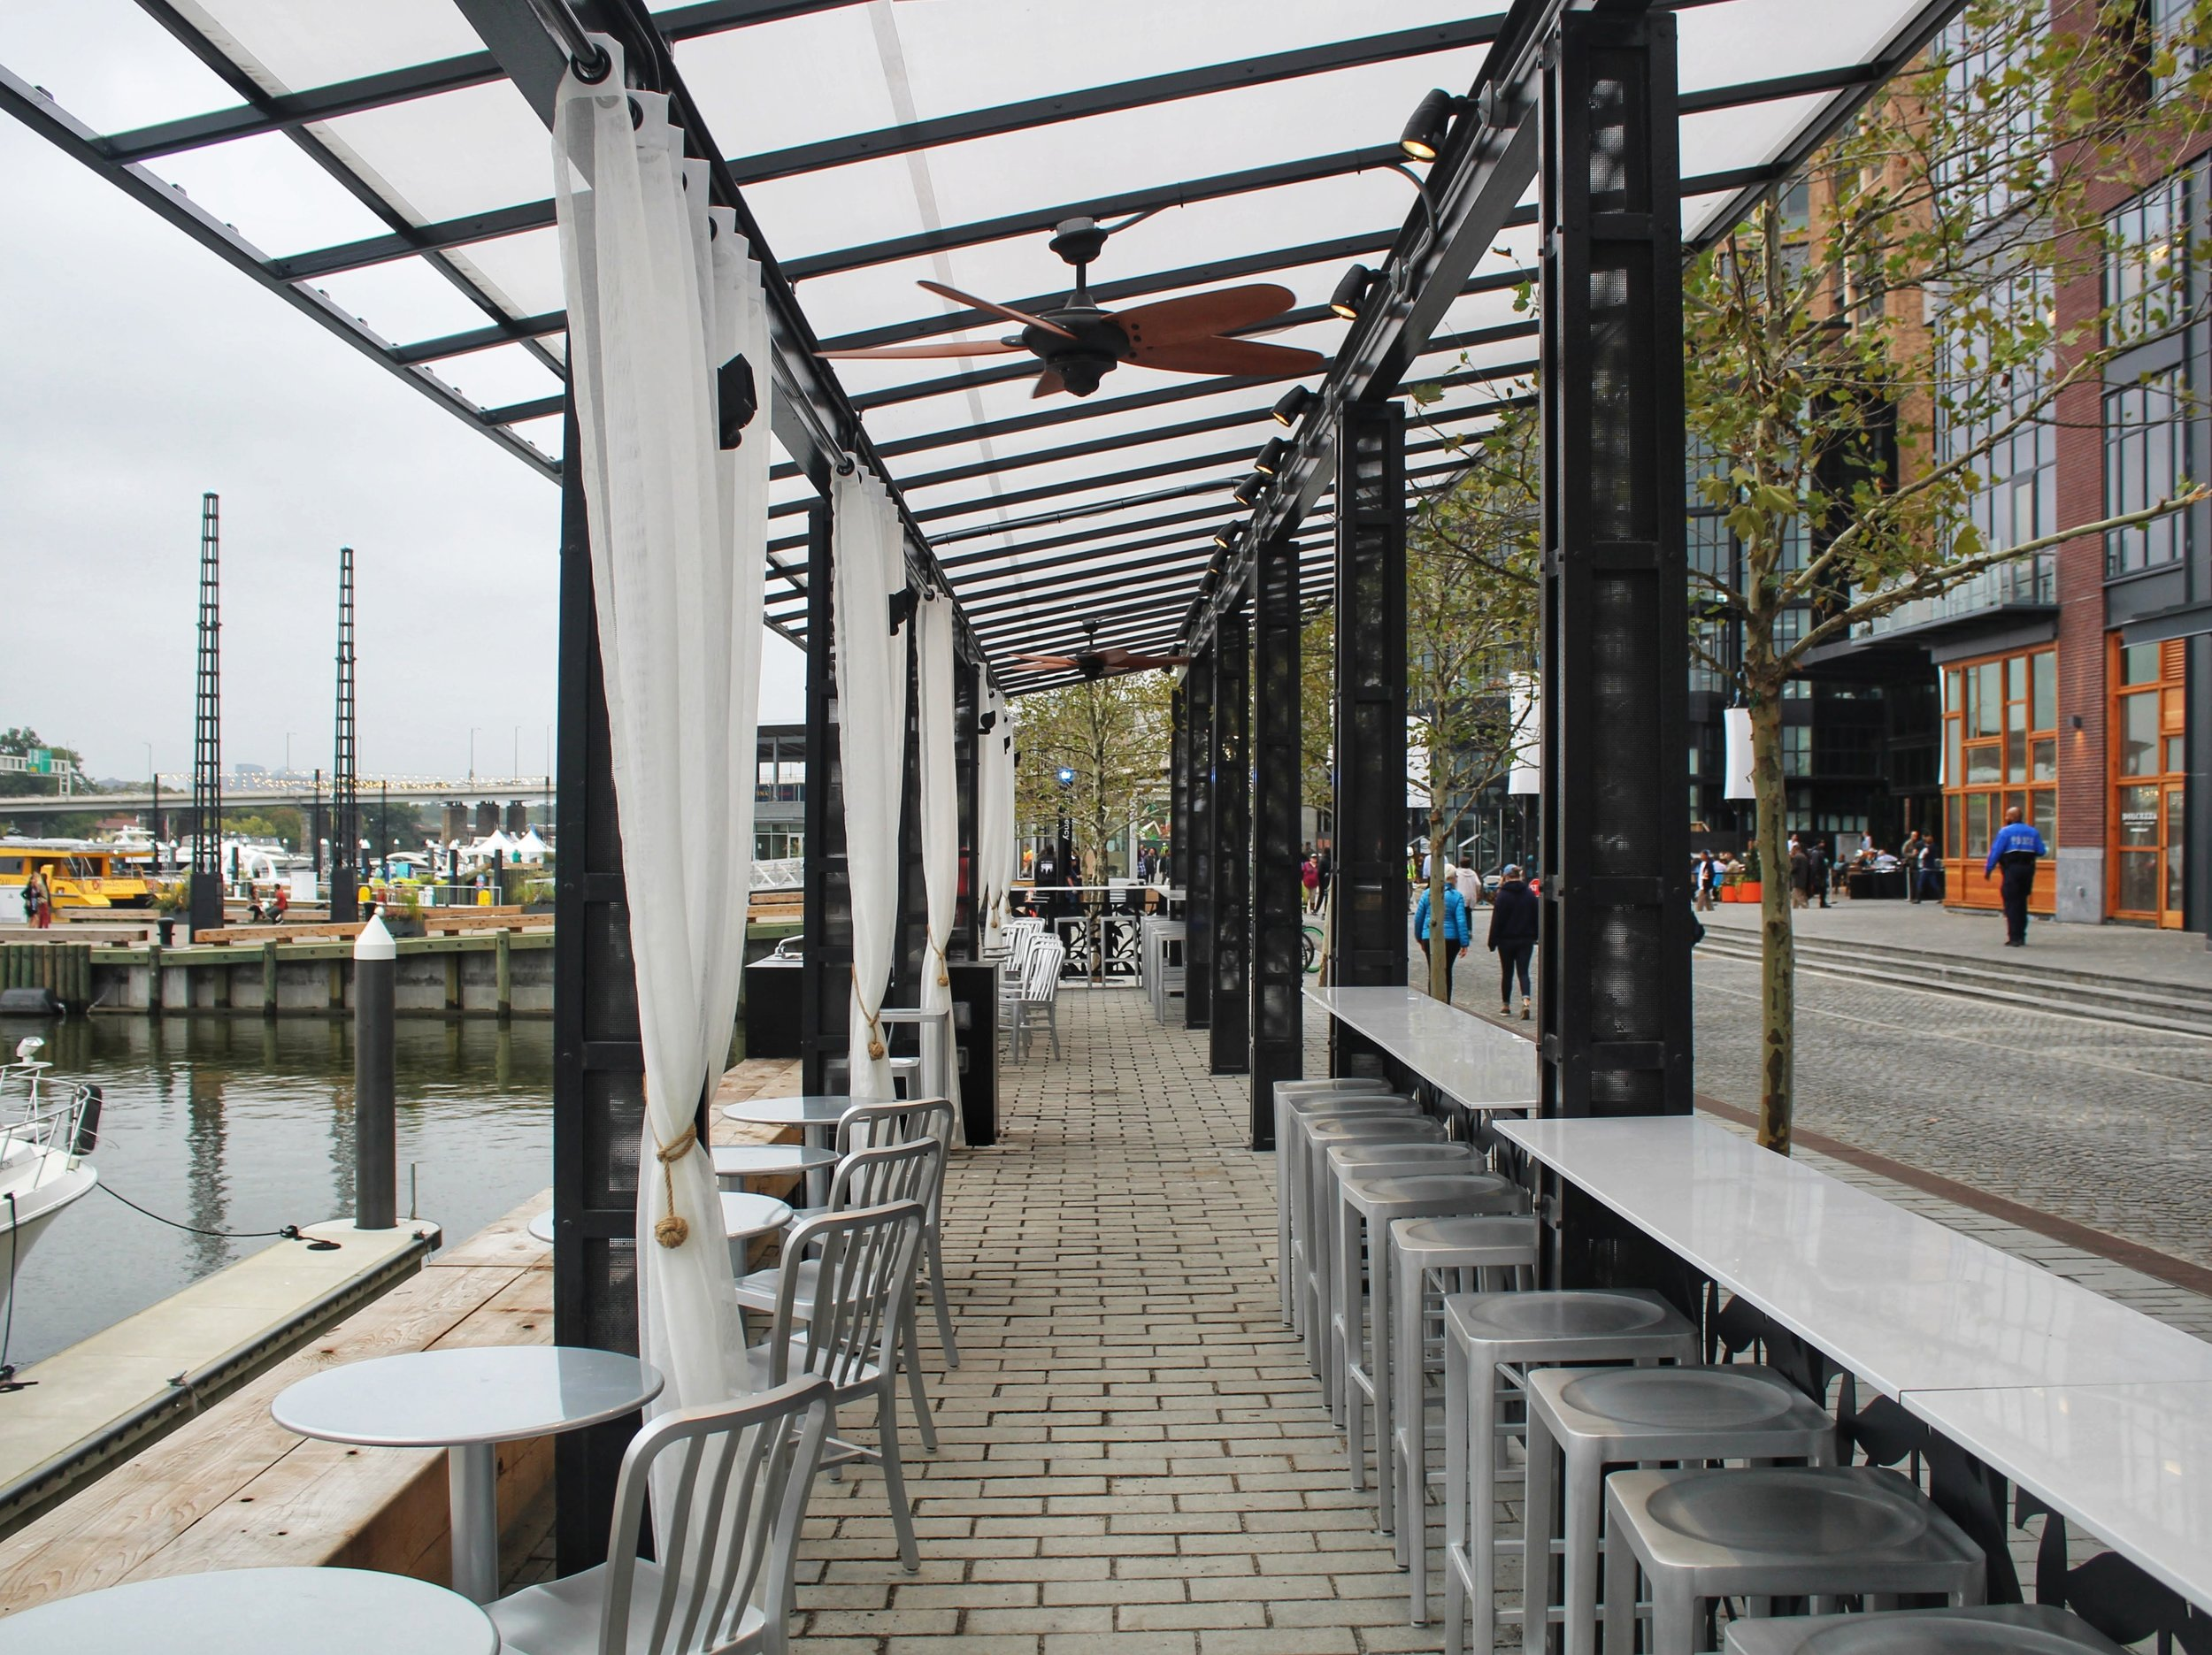 Seating for diners located between the pedestrian walkway and Washington Channel.